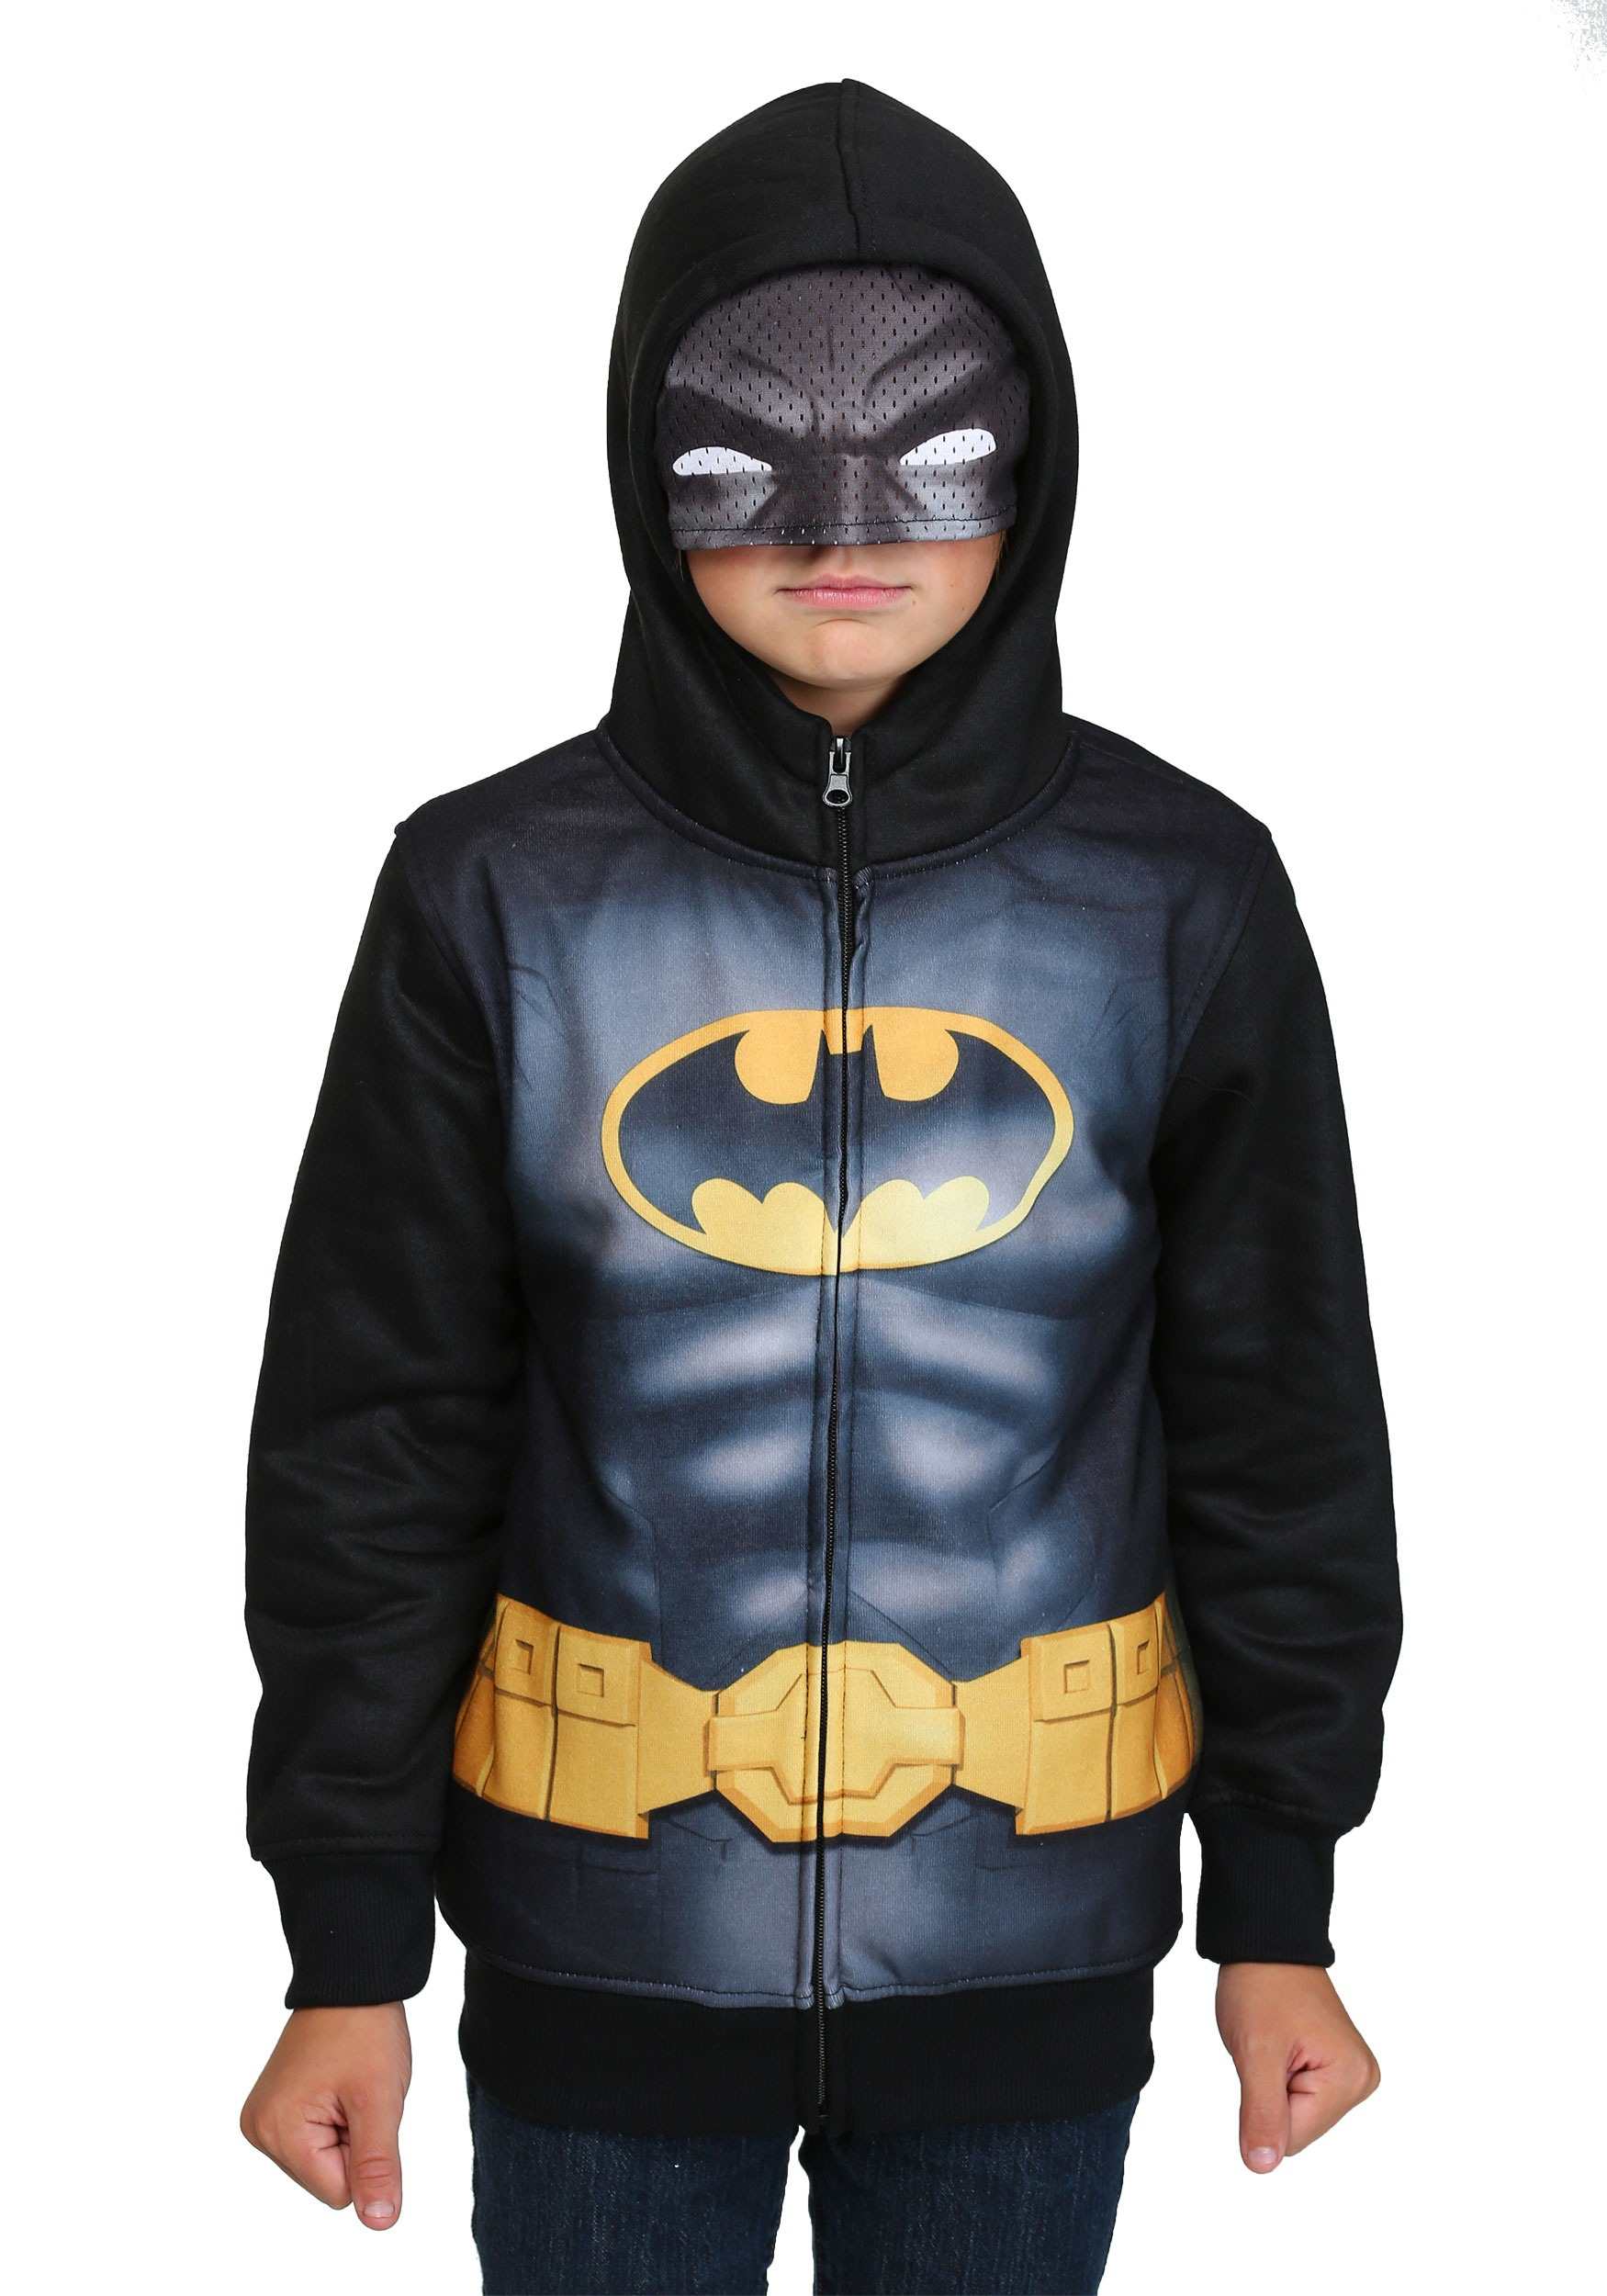 Be Unique. Shop batman kids hoodies created by independent artists from around the globe. We print the highest quality batman kids hoodies on the internet.